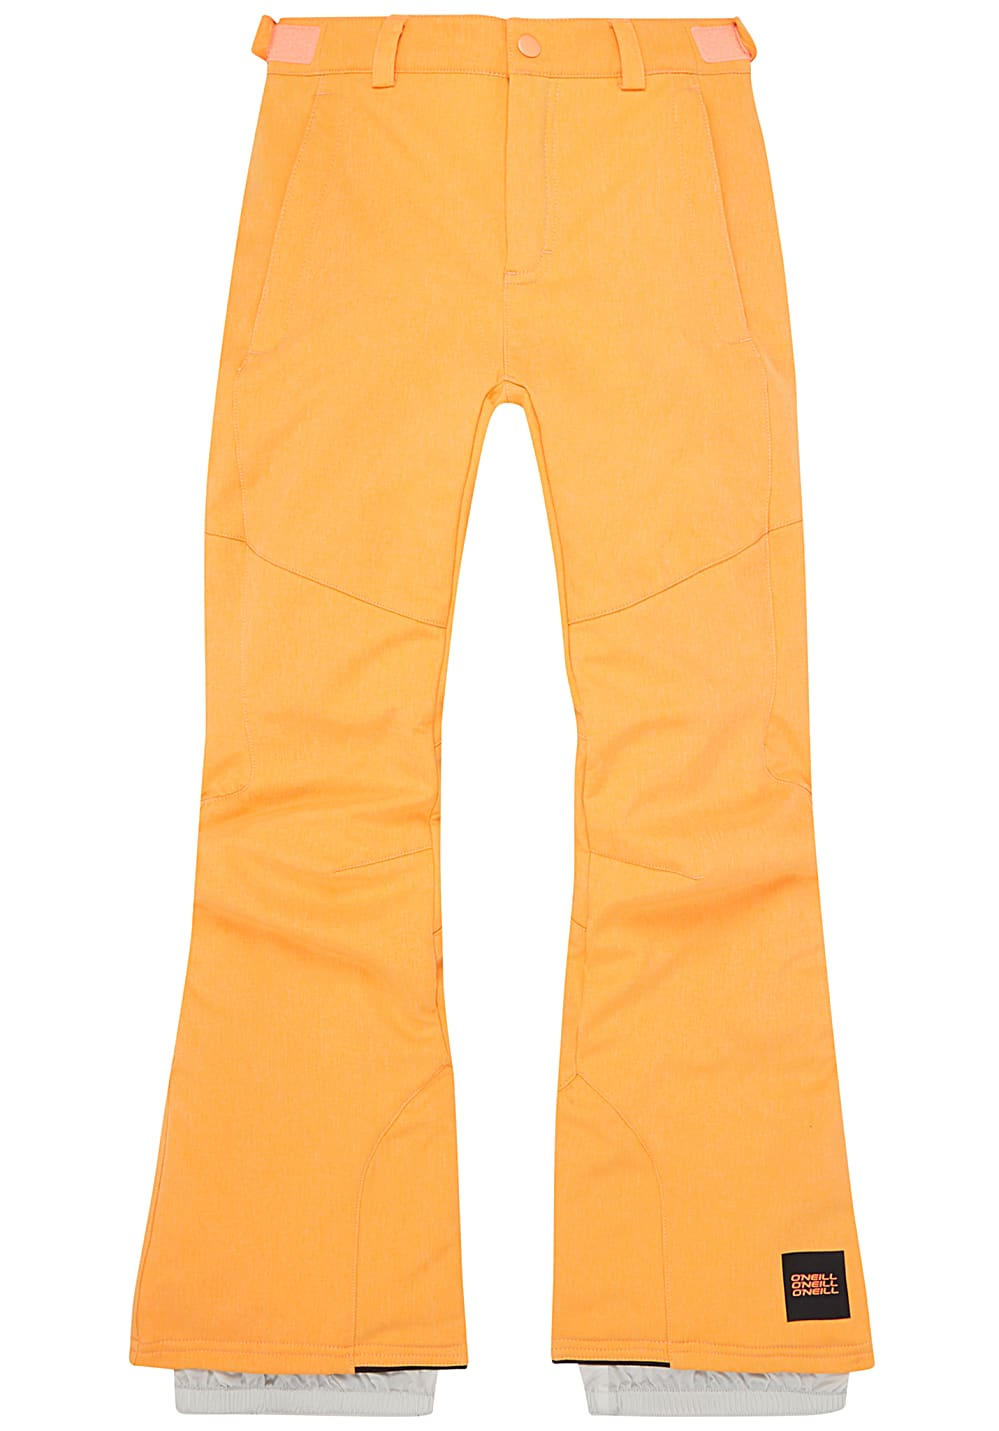 Girlsregenwinter - O'Neill Charm Slim Snowboardhose für Mädchen Orange - Onlineshop Planet Sports